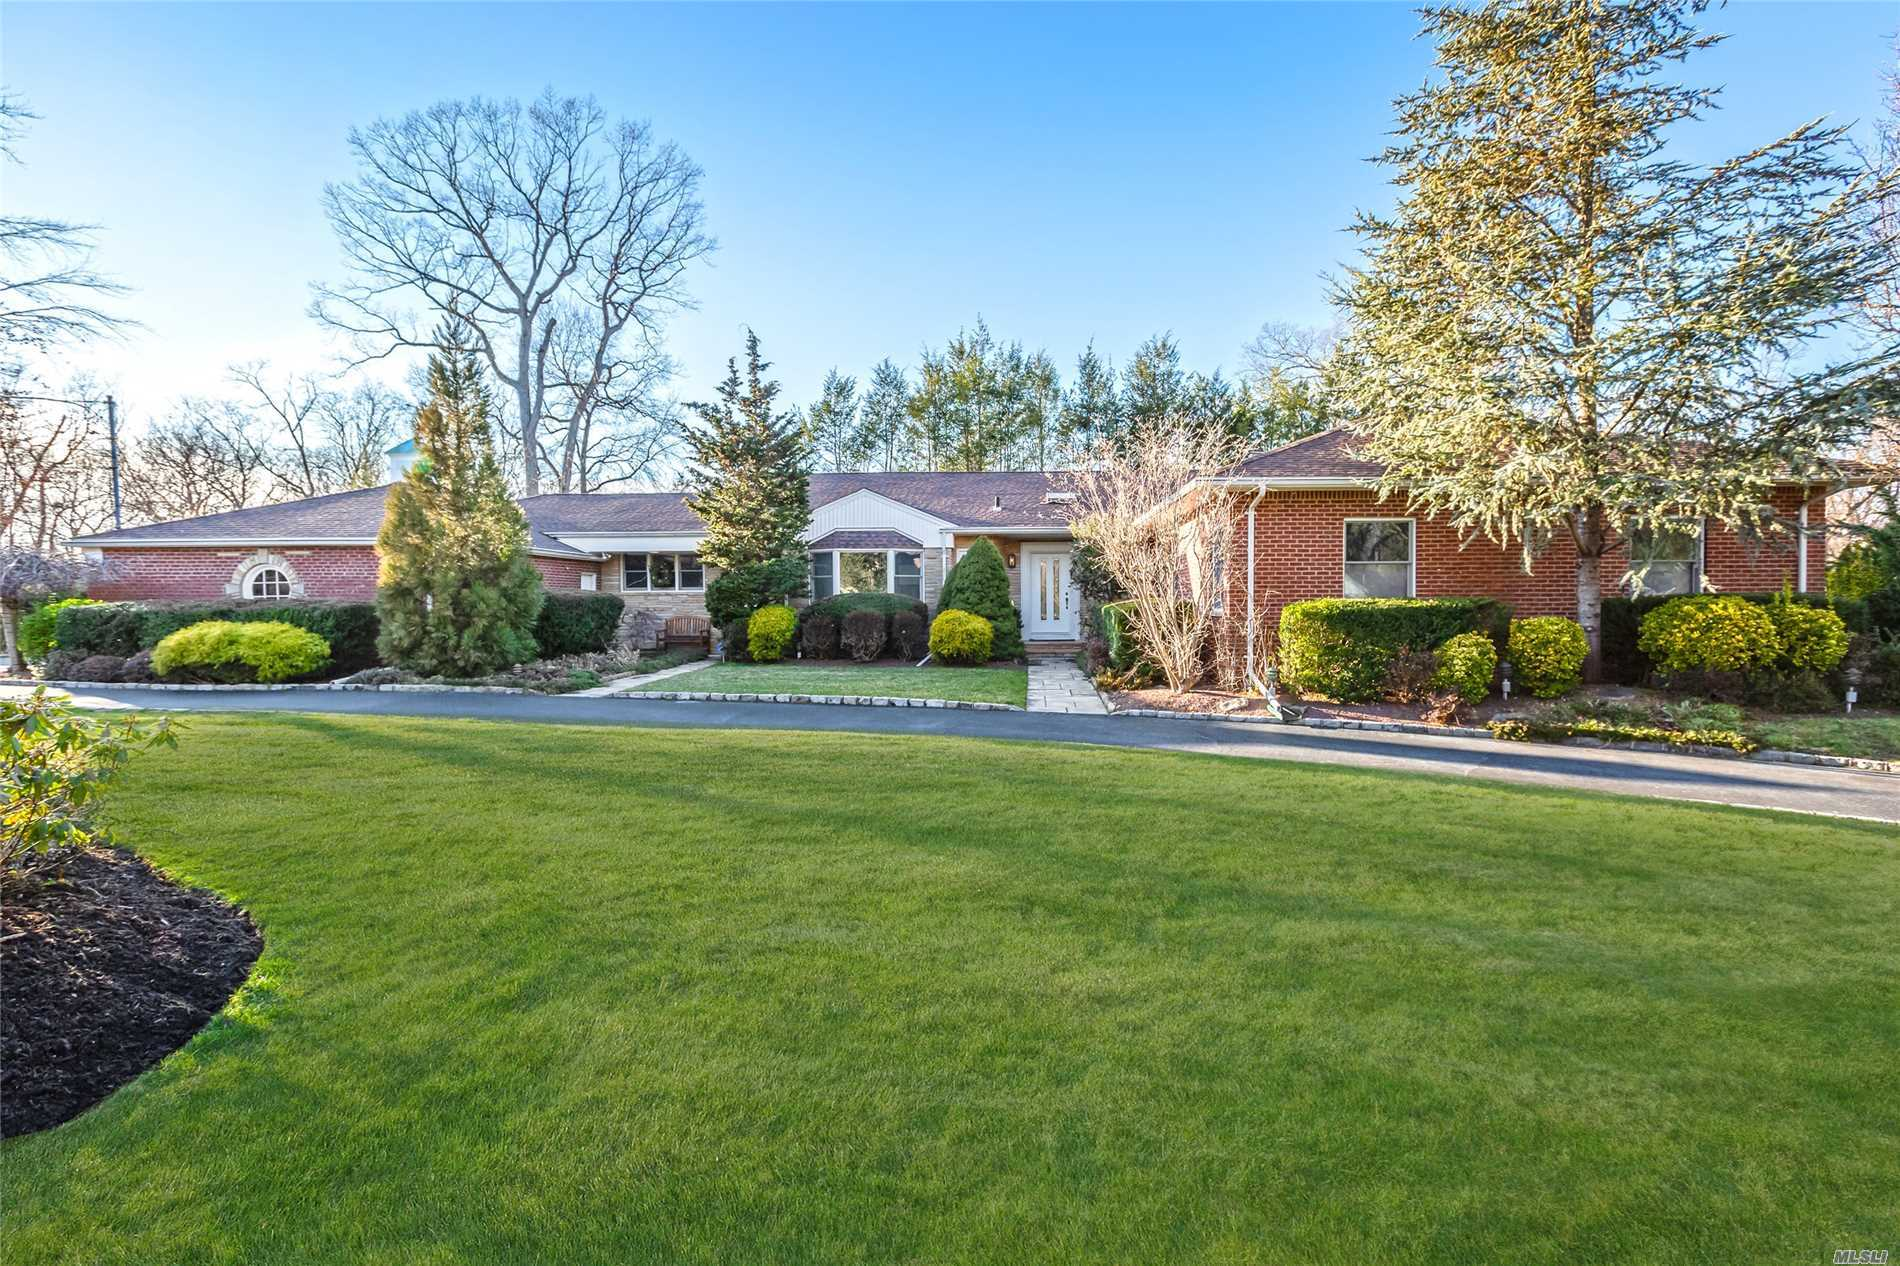 This Is An Unbelievable Home In A Terrific Private Beach Community And An Award Winning School District. Kitchen, Baths, 5 Bedrooms.....Too Many Updates To List Here But Note The 4 Car Garage, Egress Windows And The Gas Powered Generator.